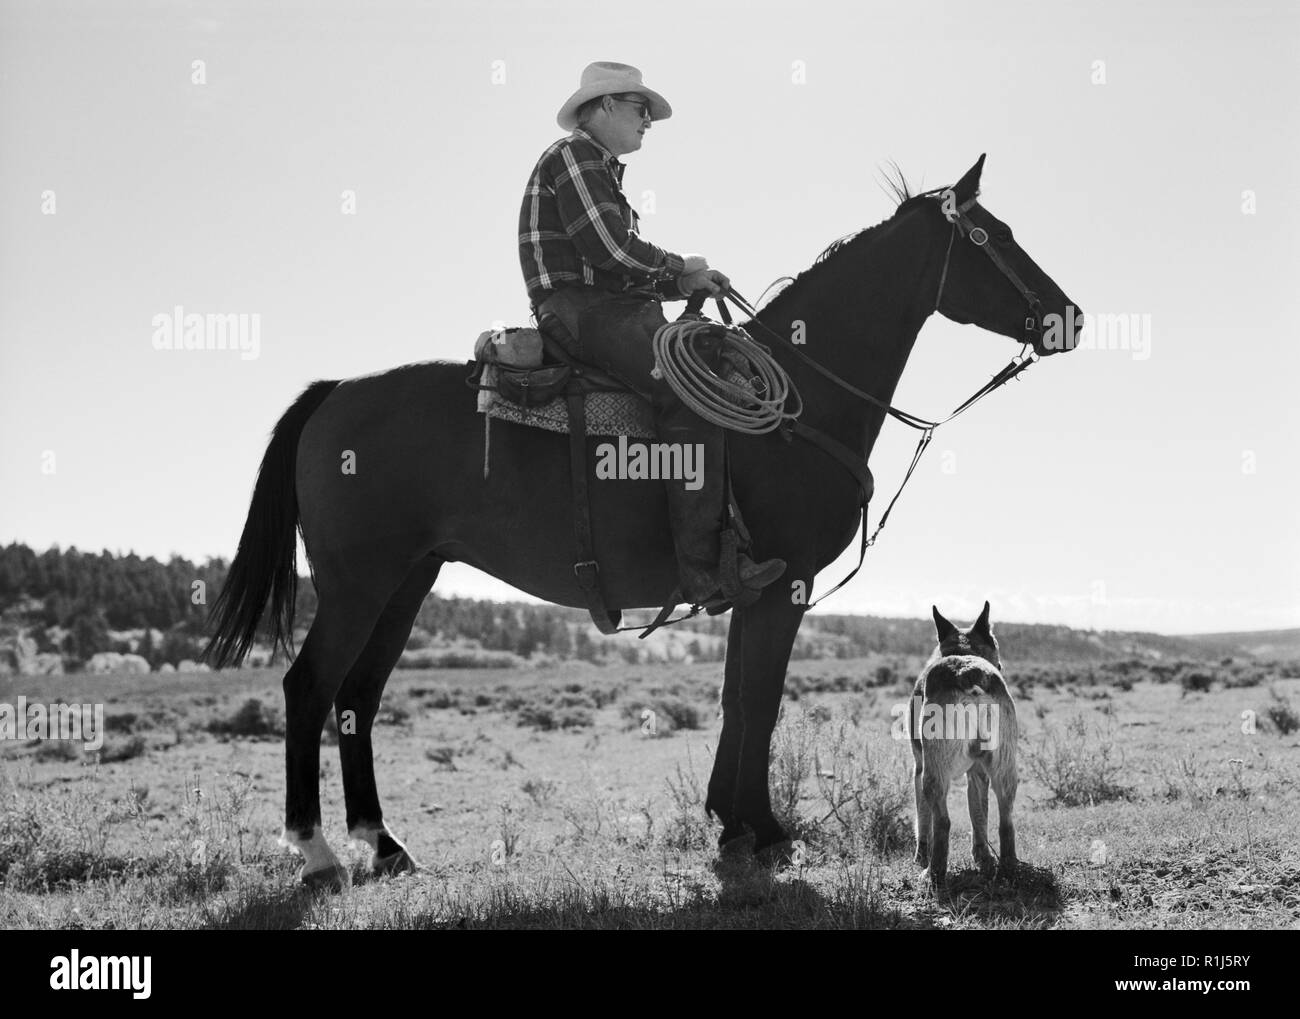 Mature cowboy sitting on a horse next to his dog in a remote field. - Stock Image